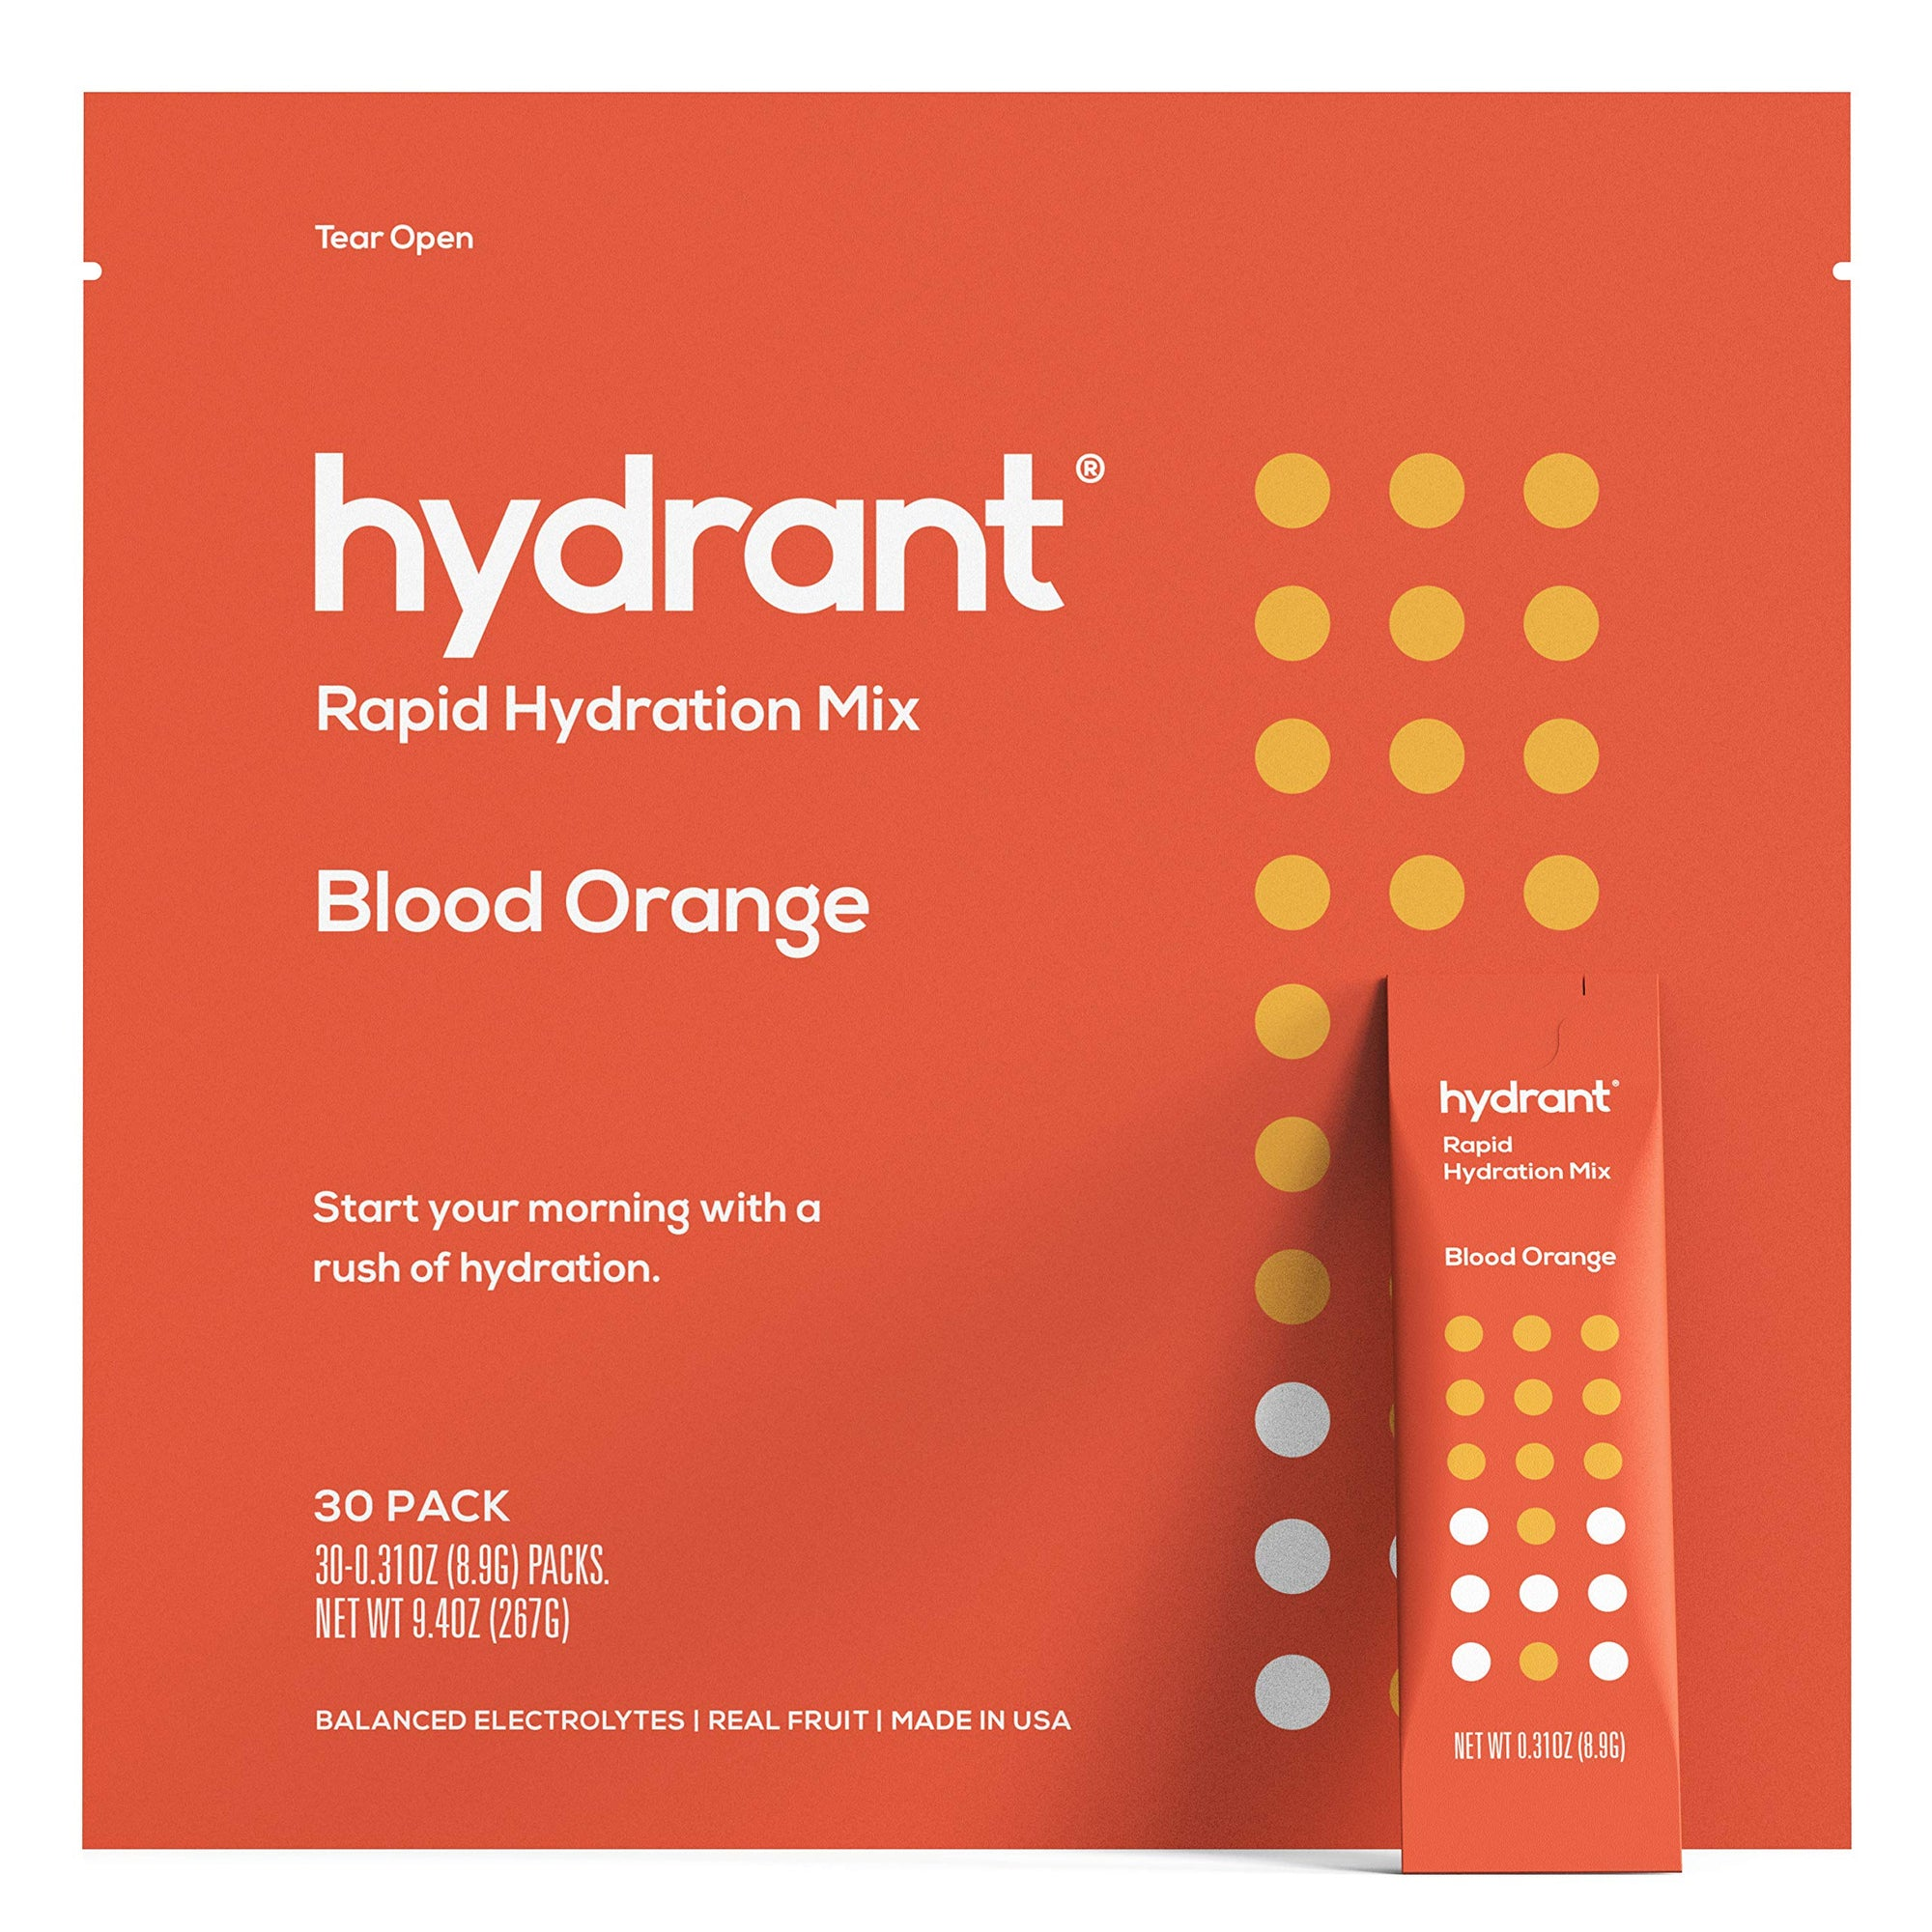 Hydrant Blood Orange Rapid Hydration Mix Version 2 | Electrolyte Powder | Dehydration Recovery Drink Blend 30pk